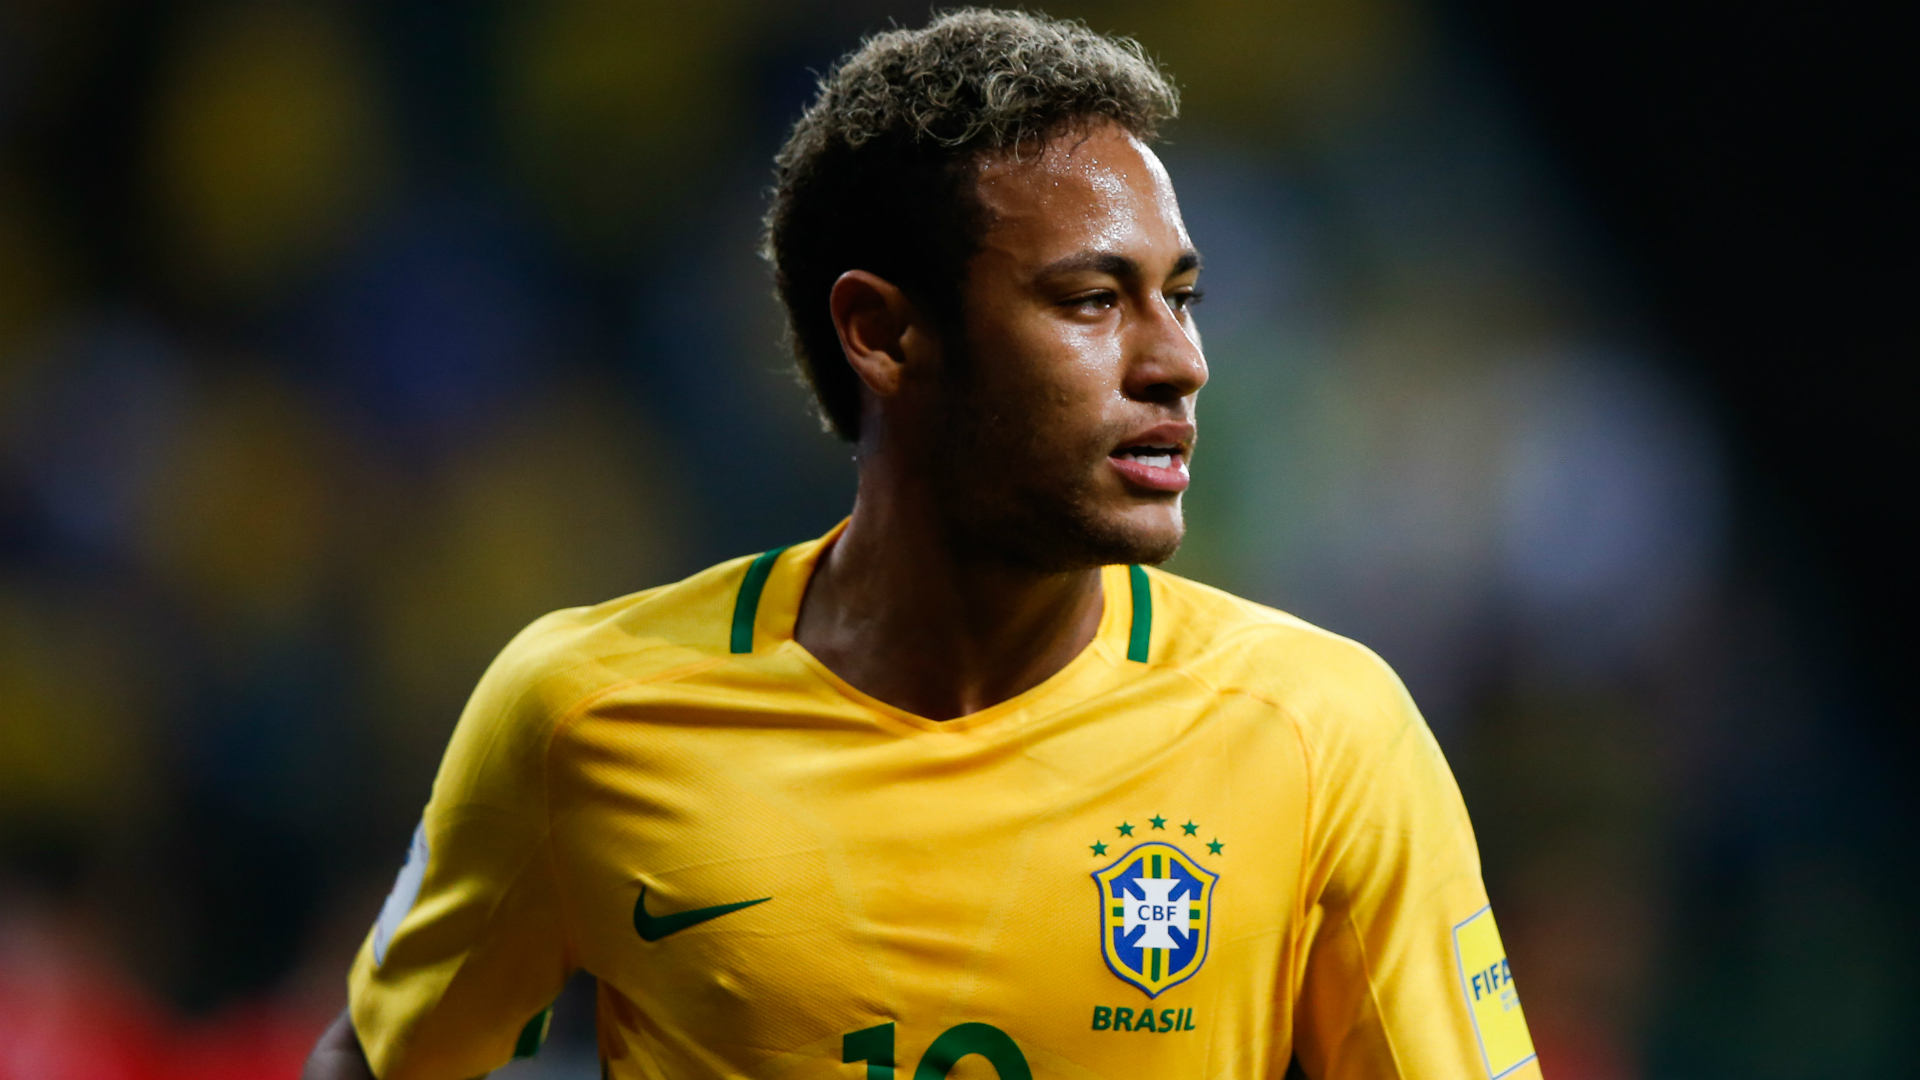 neymar brazil targeting world cup at russia 2018